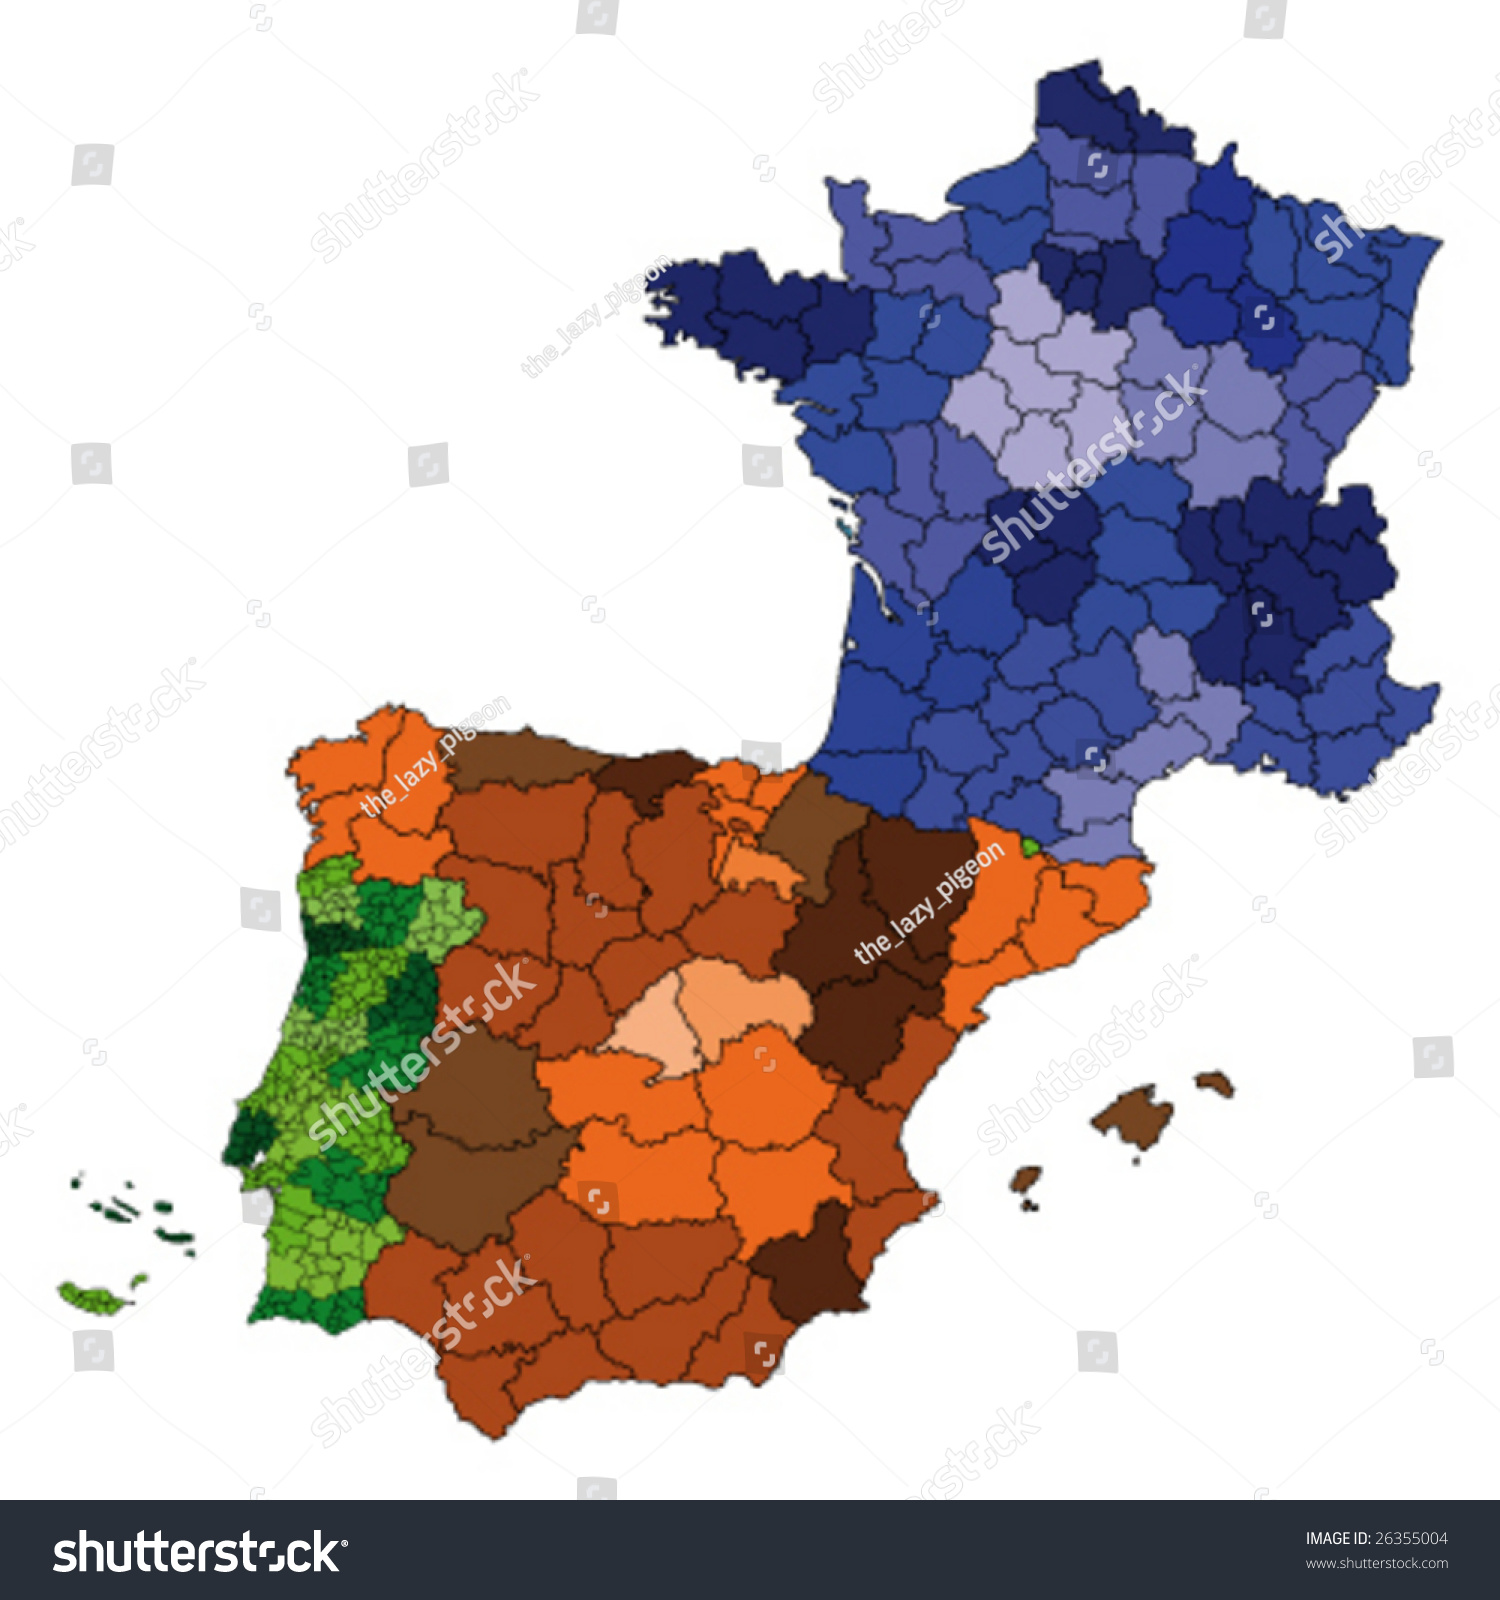 Map Of Portugal Spain France.Hi Detailed Vector Map France Spain Stock Vector Royalty Free 26355004